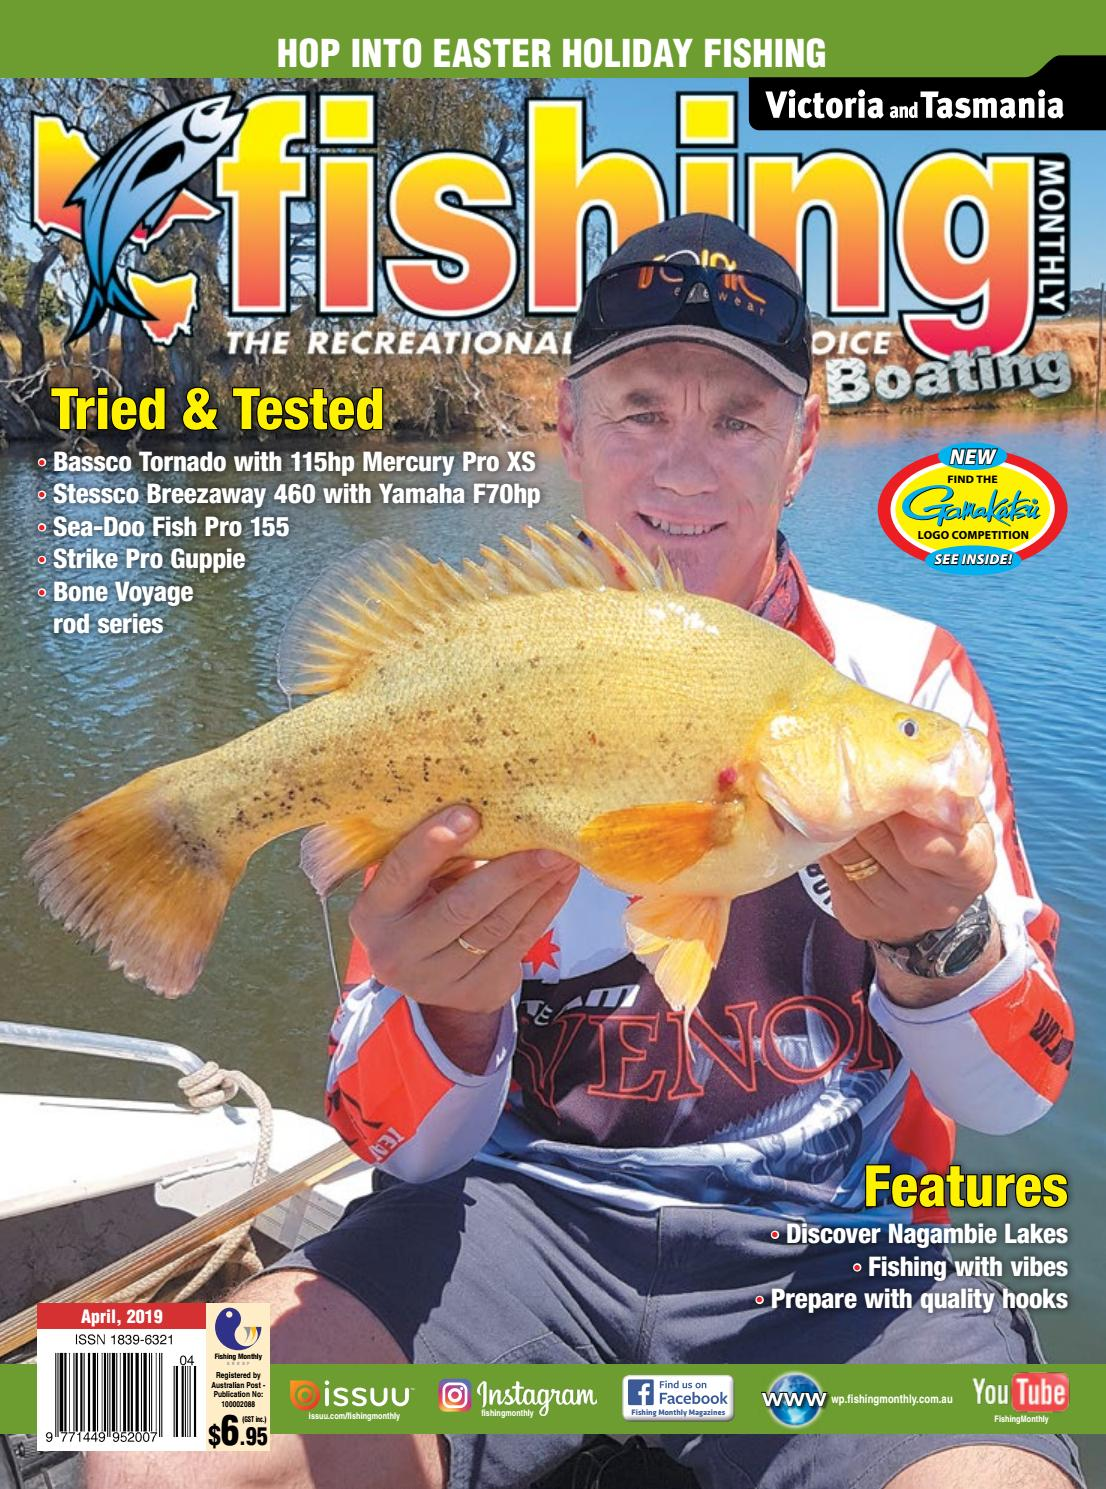 Victoria and Tasmania Fishing Monthly April 2019 by Fishing Monthly